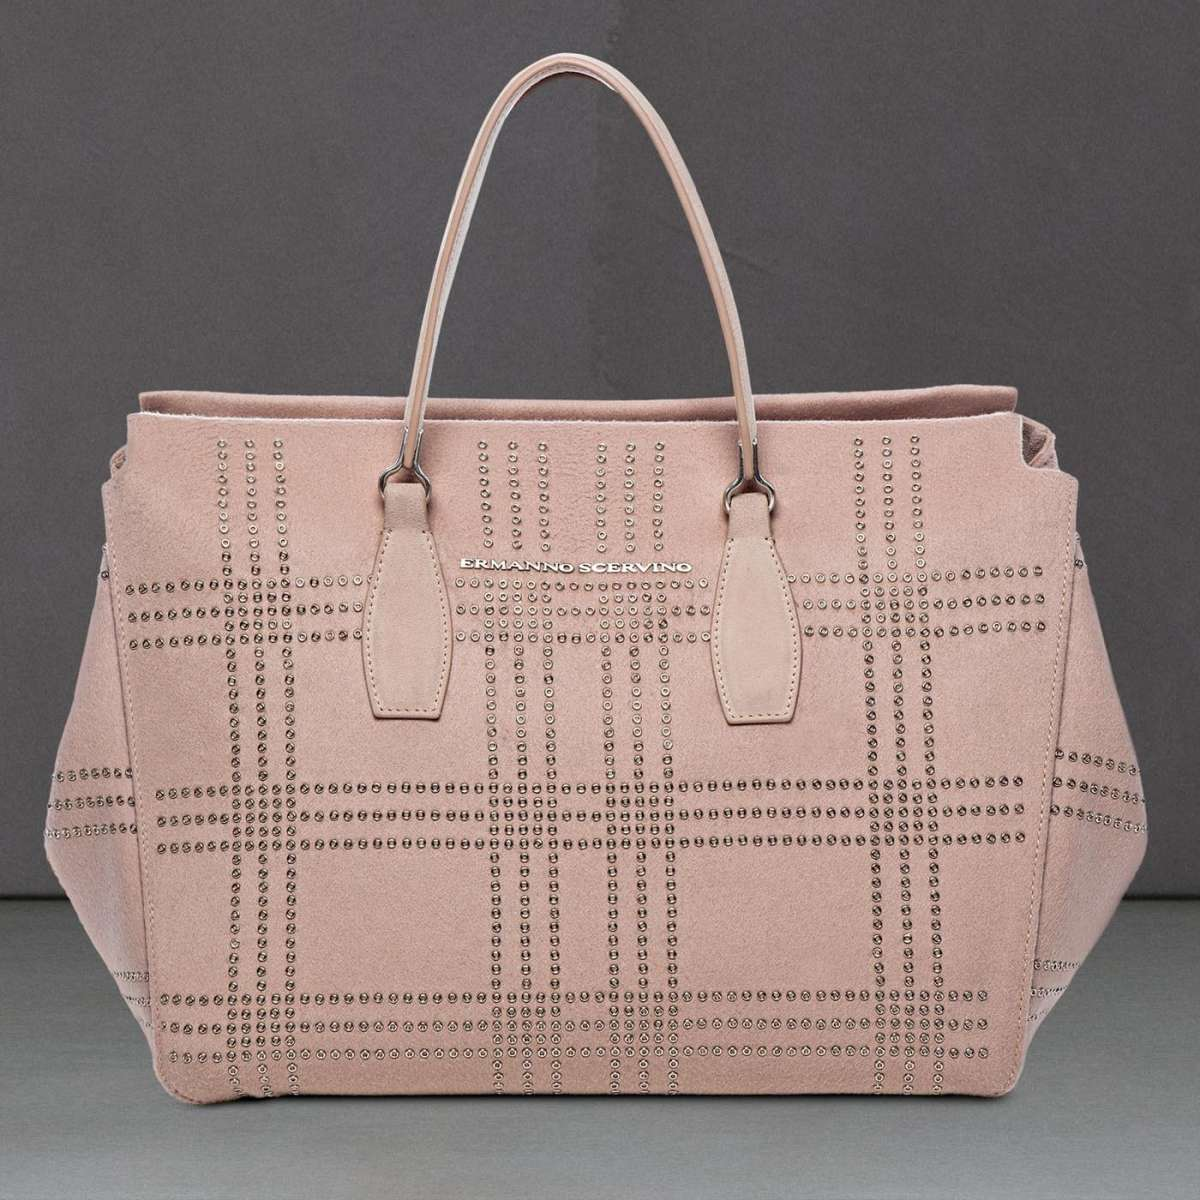 Handbag rosa tenue con borchiette disposte a scacchi